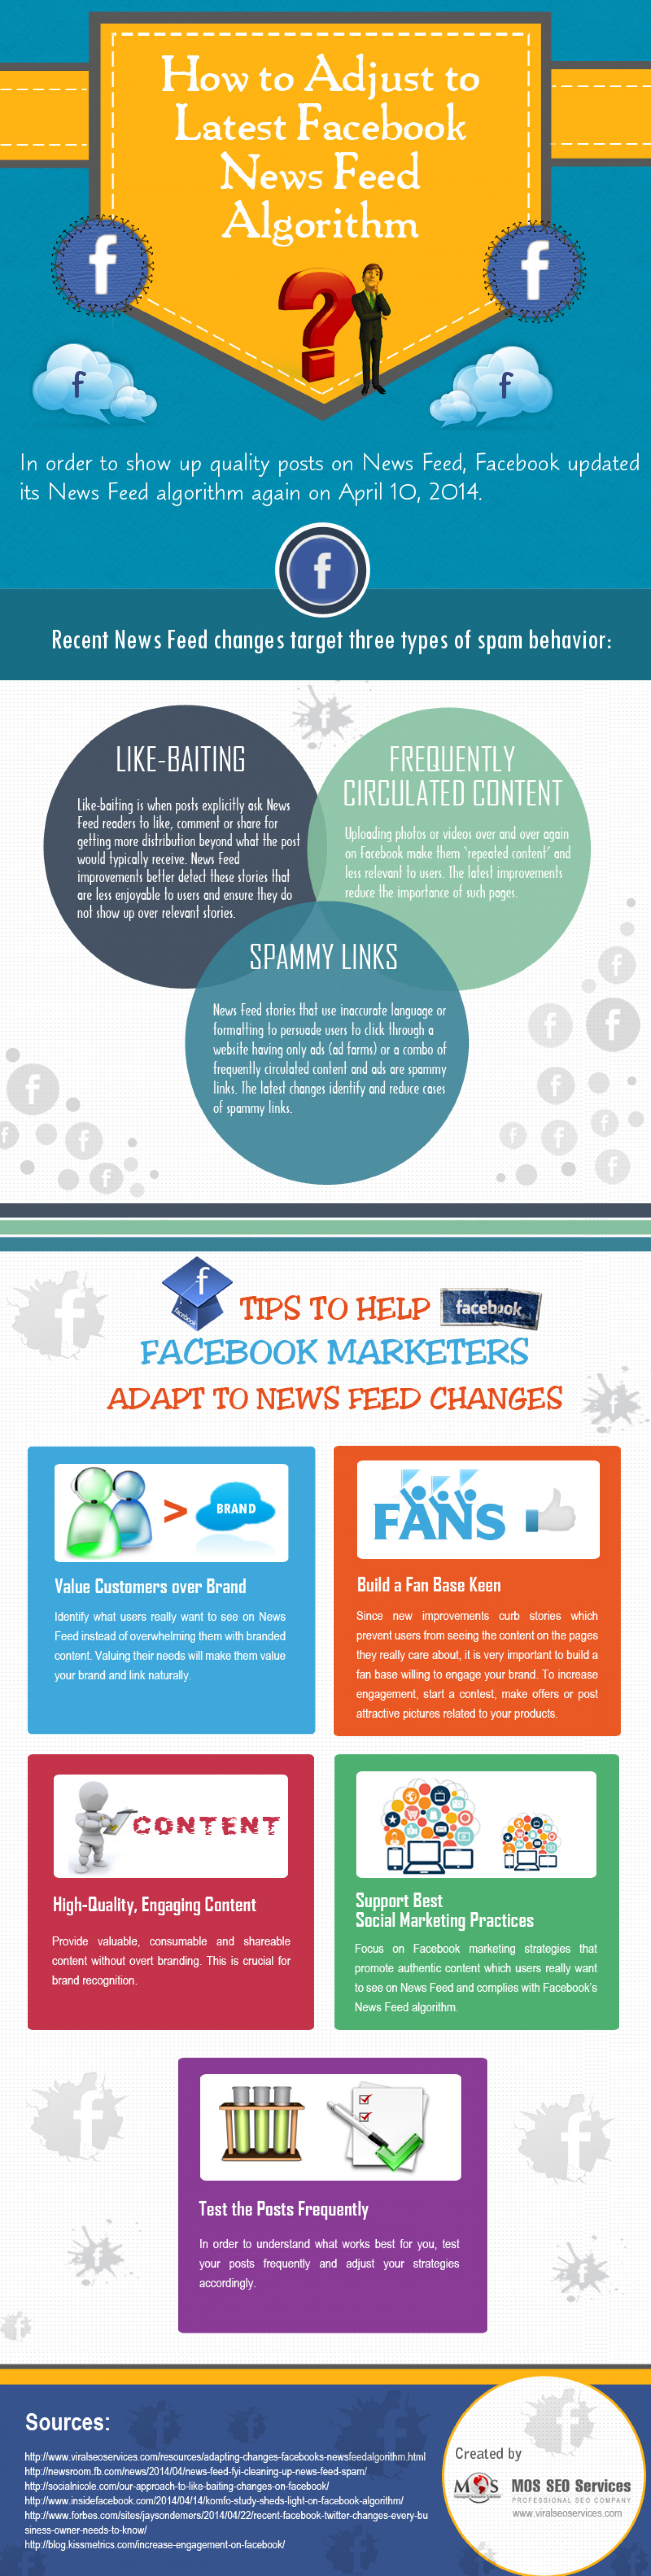 How to Adjust to Latest Facebook News Feed Algorithm  Infographic